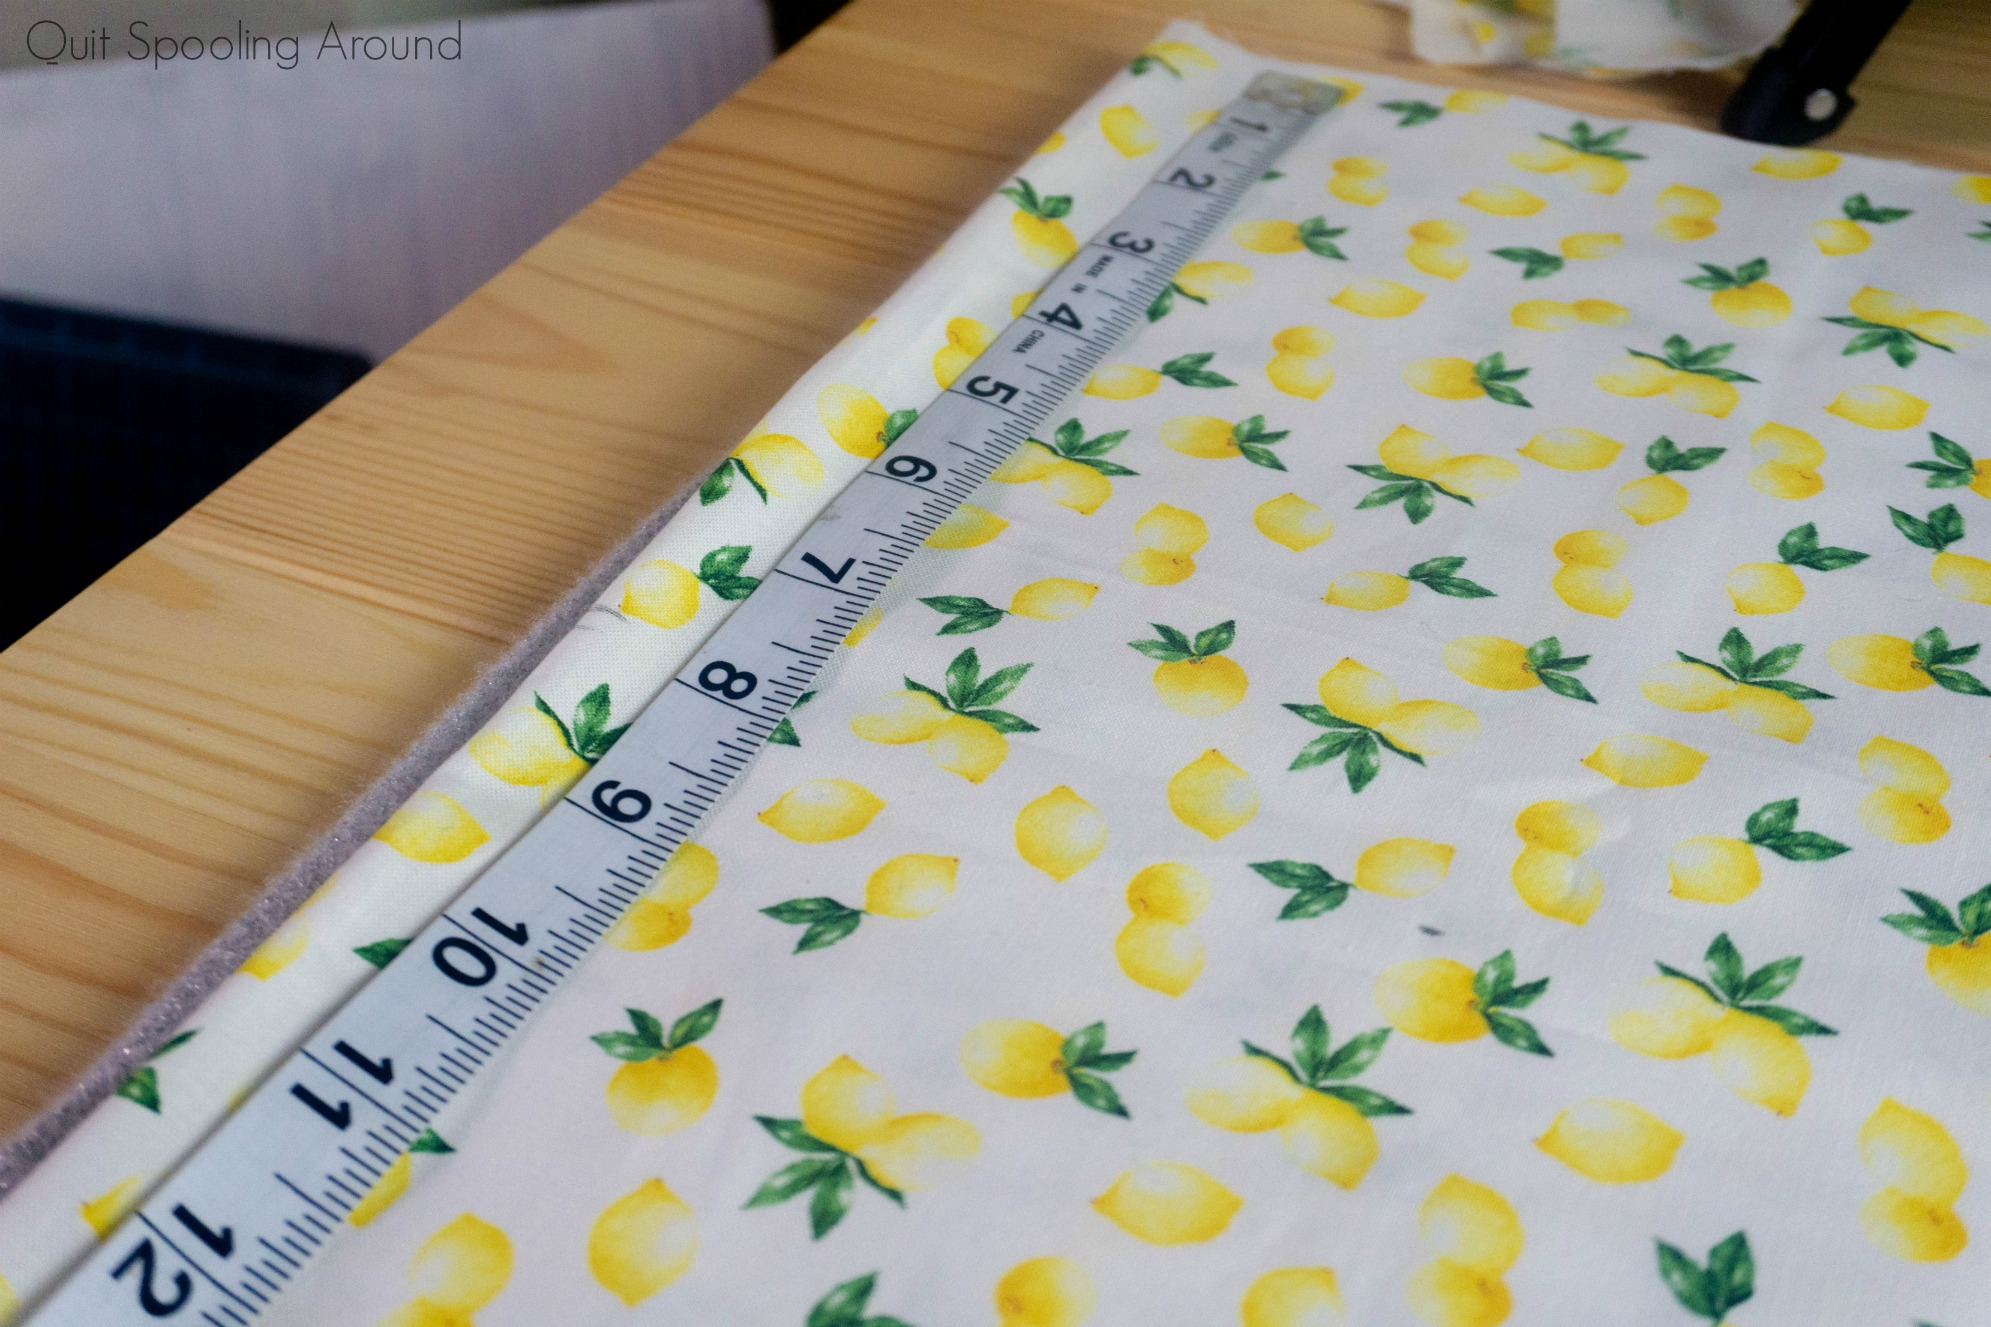 Kitchen Pot Holder - Measuring Fabric